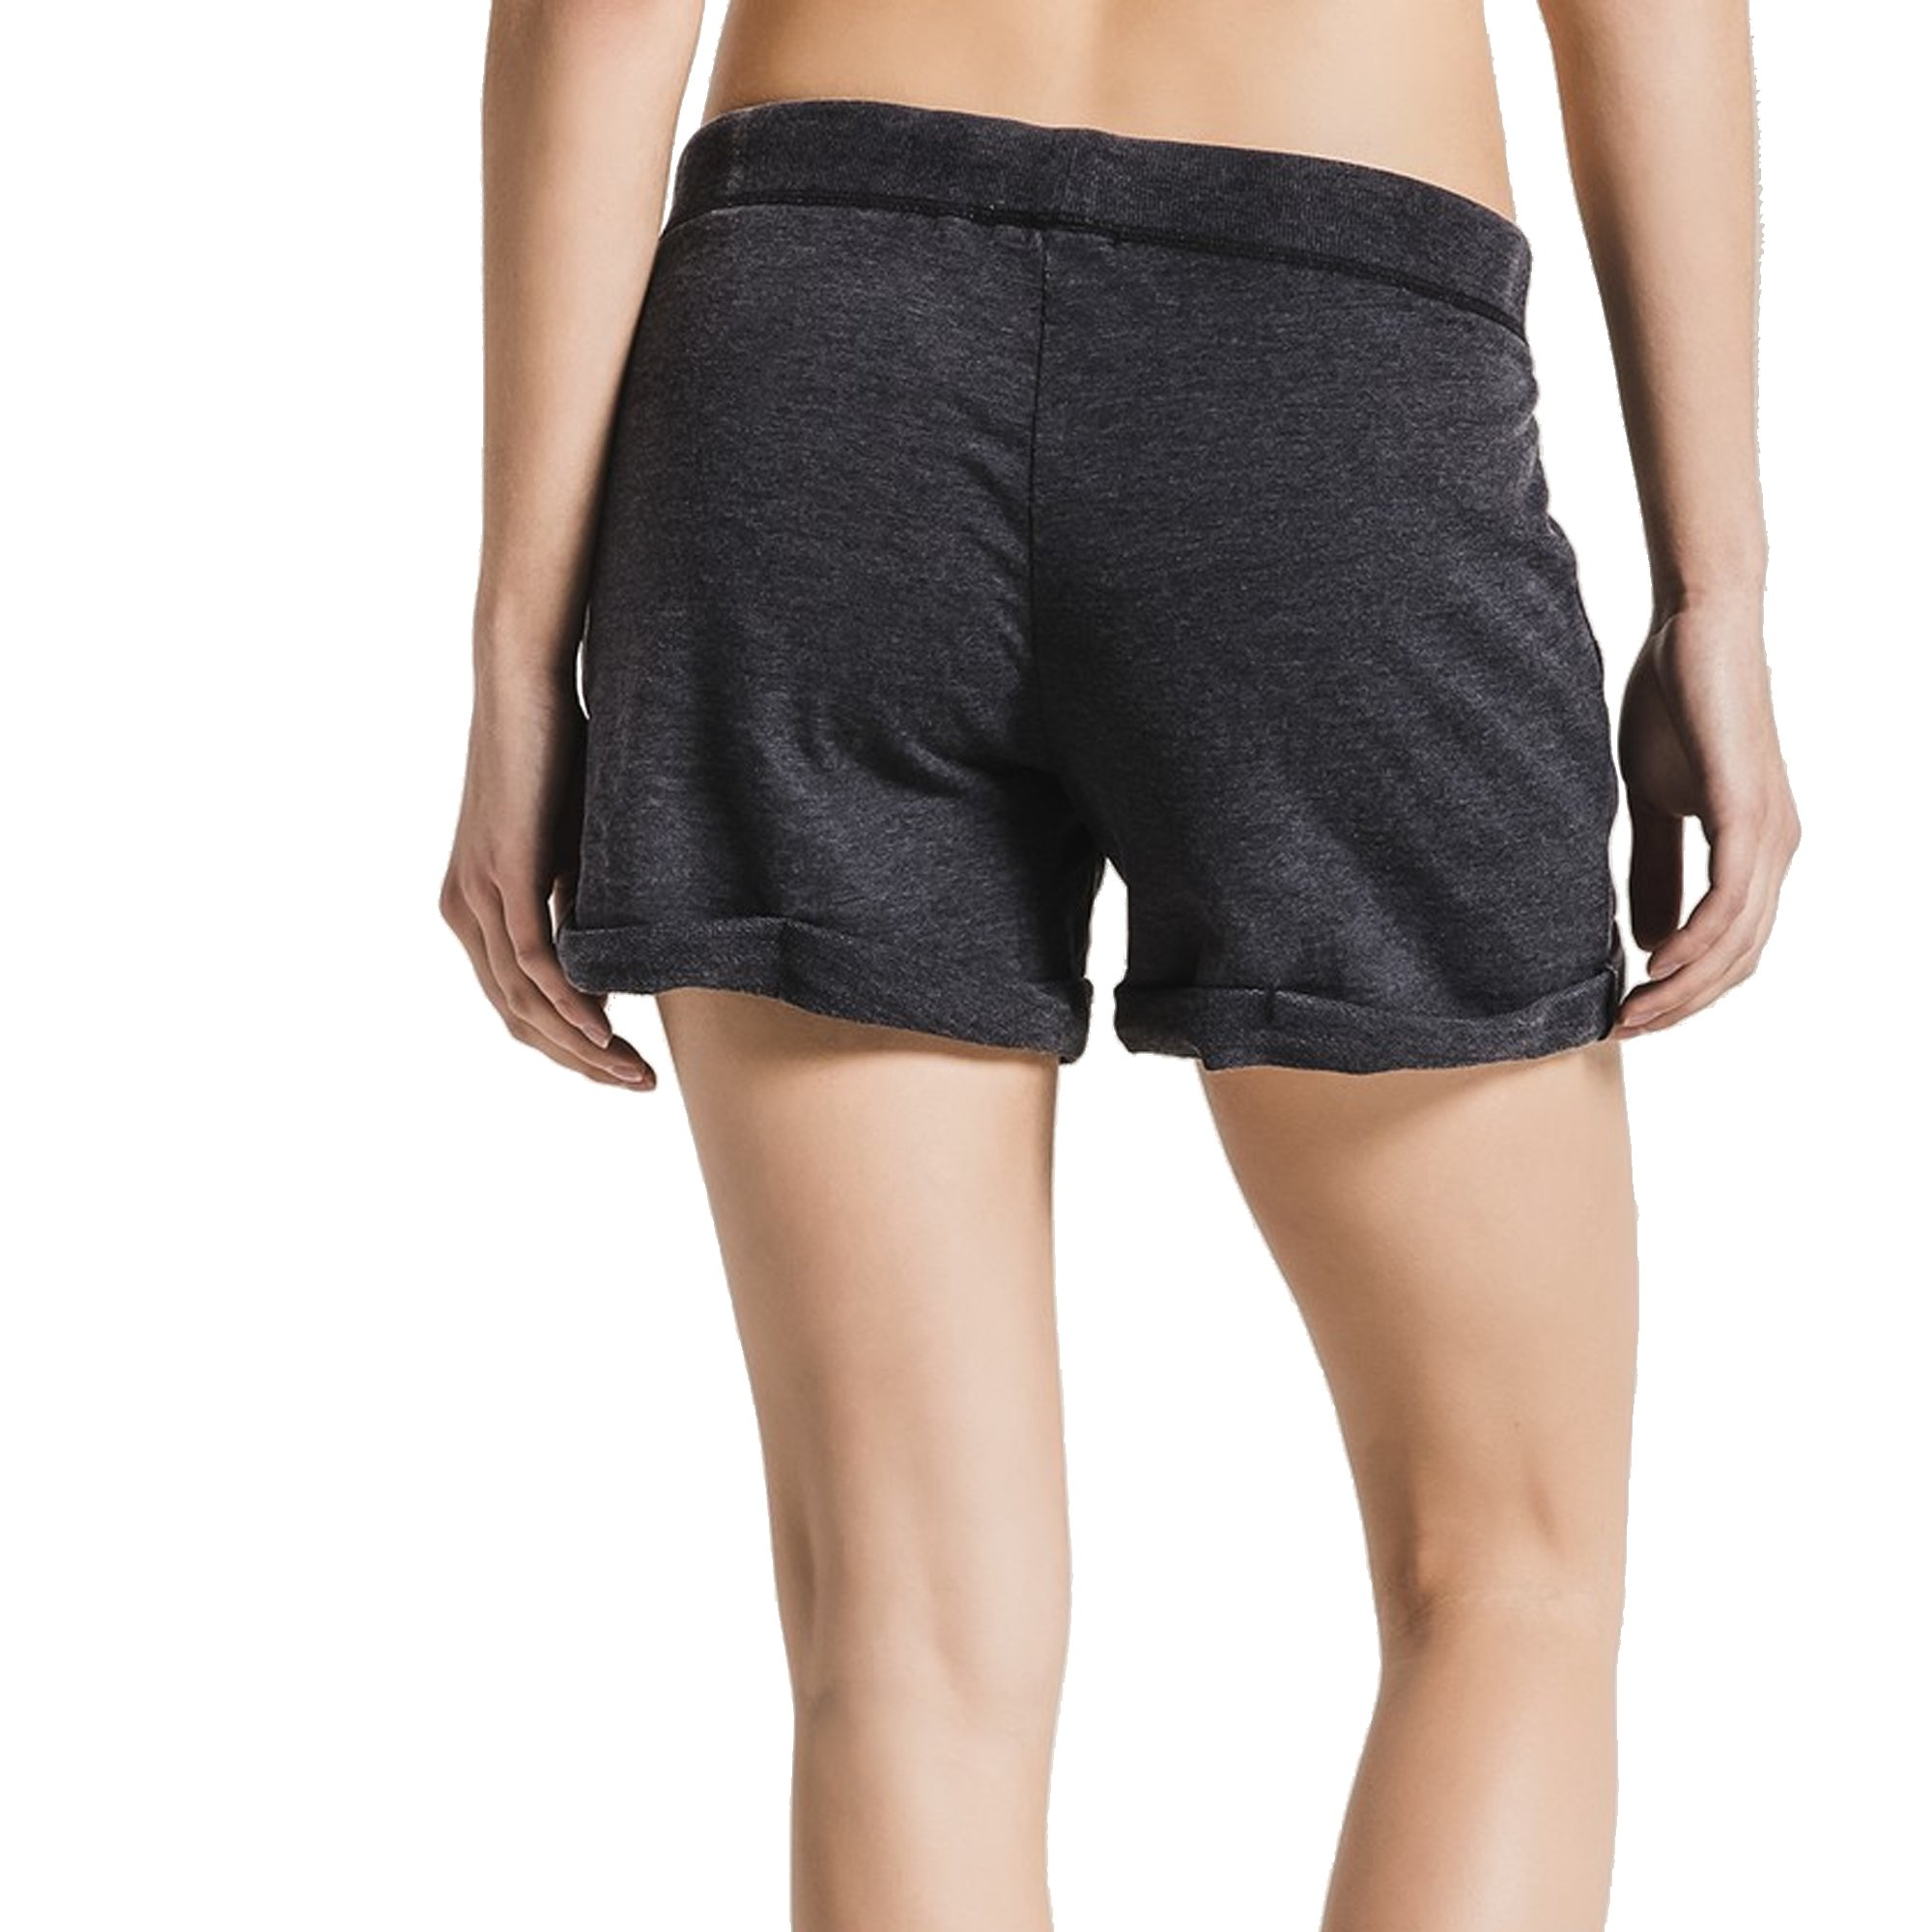 Z SUPPLY Women's The Boyfriend Short Burnout Fabric Relaxed Fit, Black, Small by Z SUPPLY (Image #1)